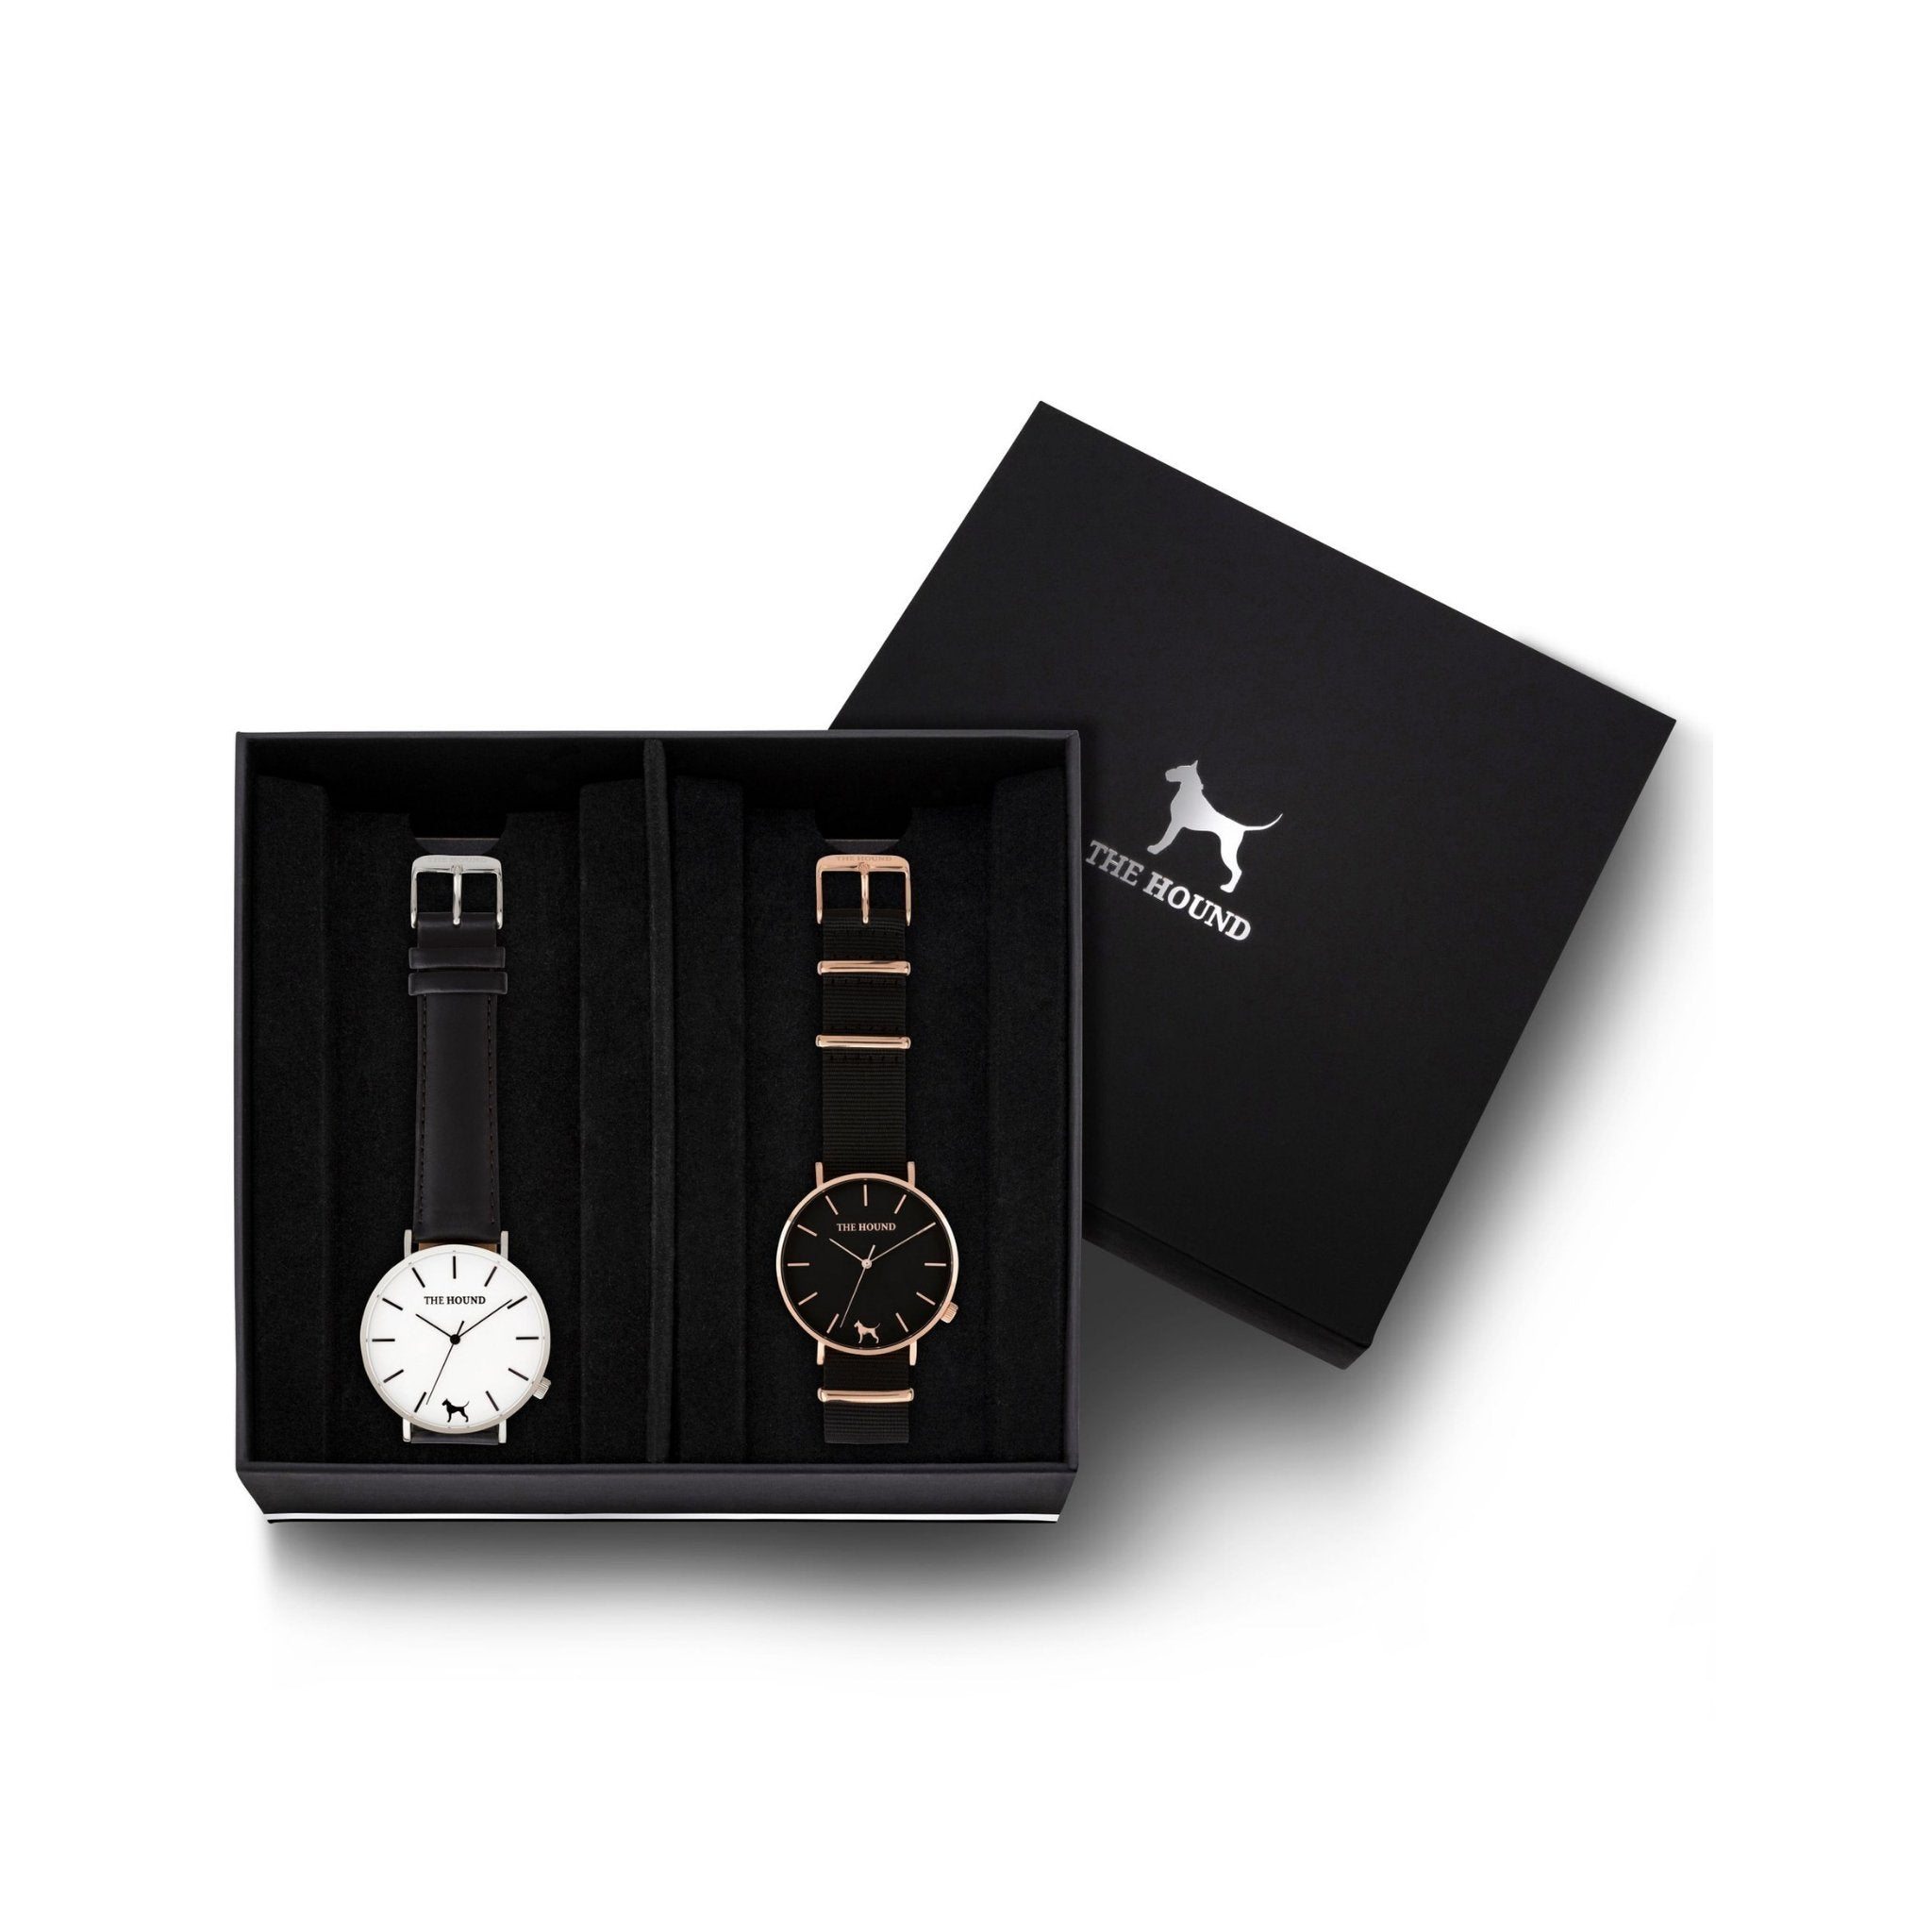 Custom gift set - Silver and white watch with stitched black genuine leather band and a rose gold and black watch with black nato leather band